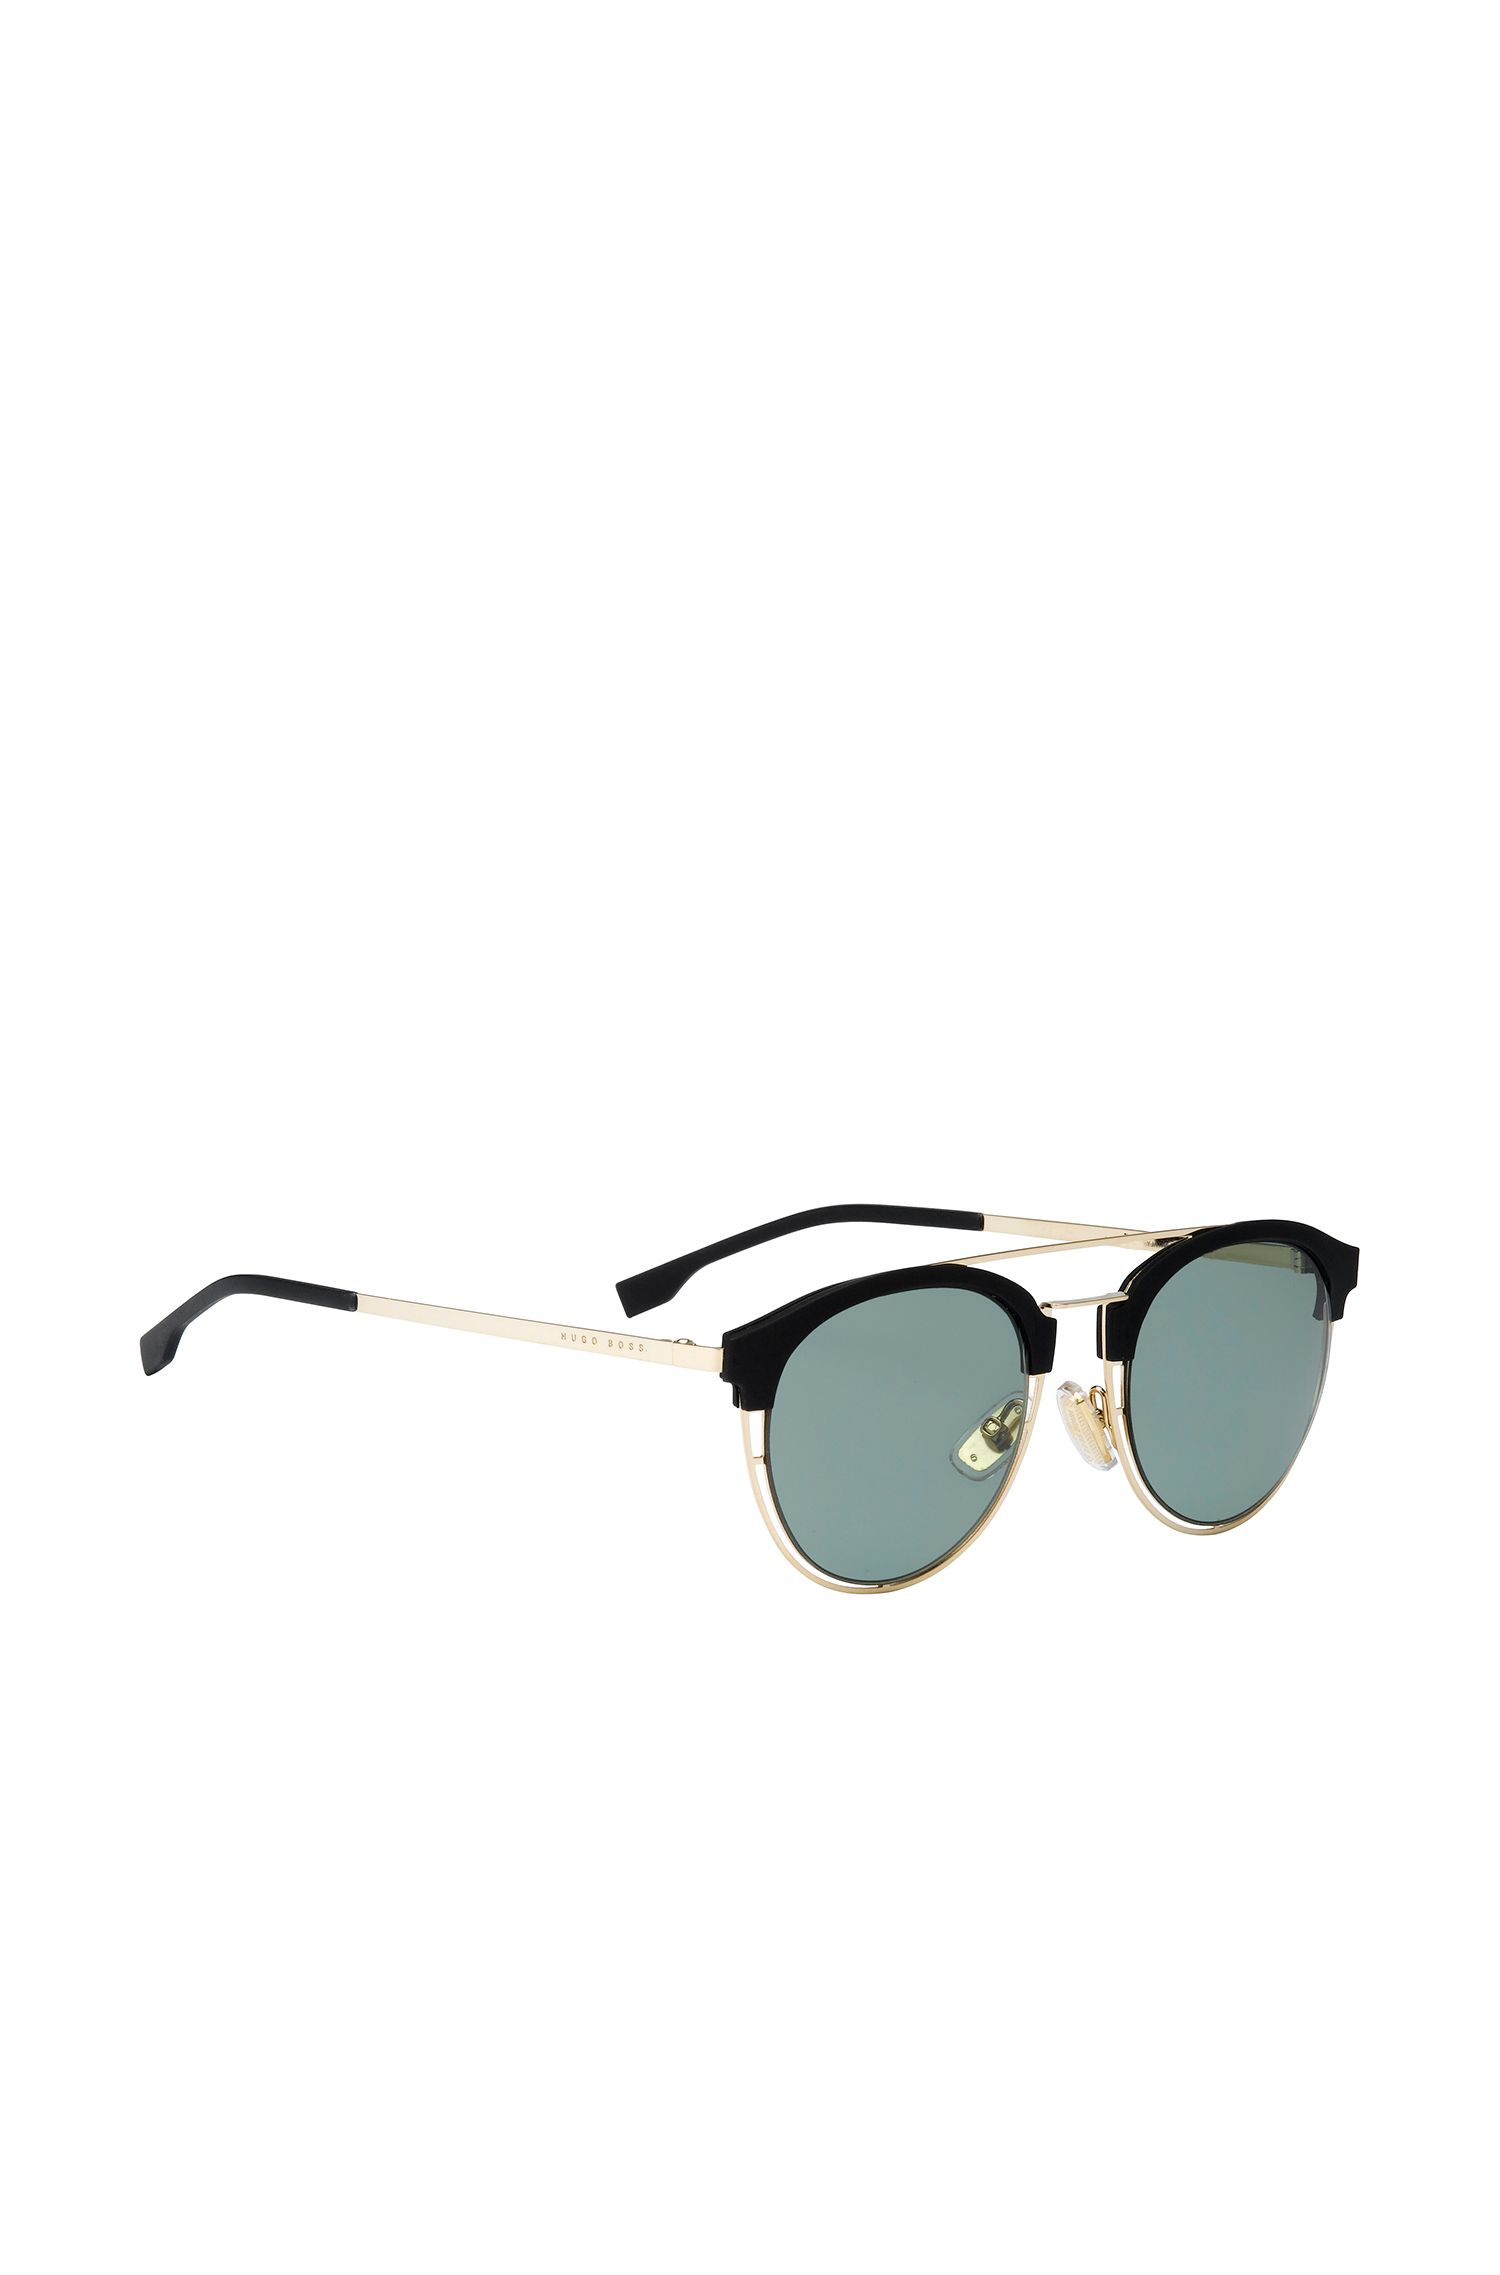 'BOSS 0784S' | Gray Green Lens Clubmaster Sunglasses